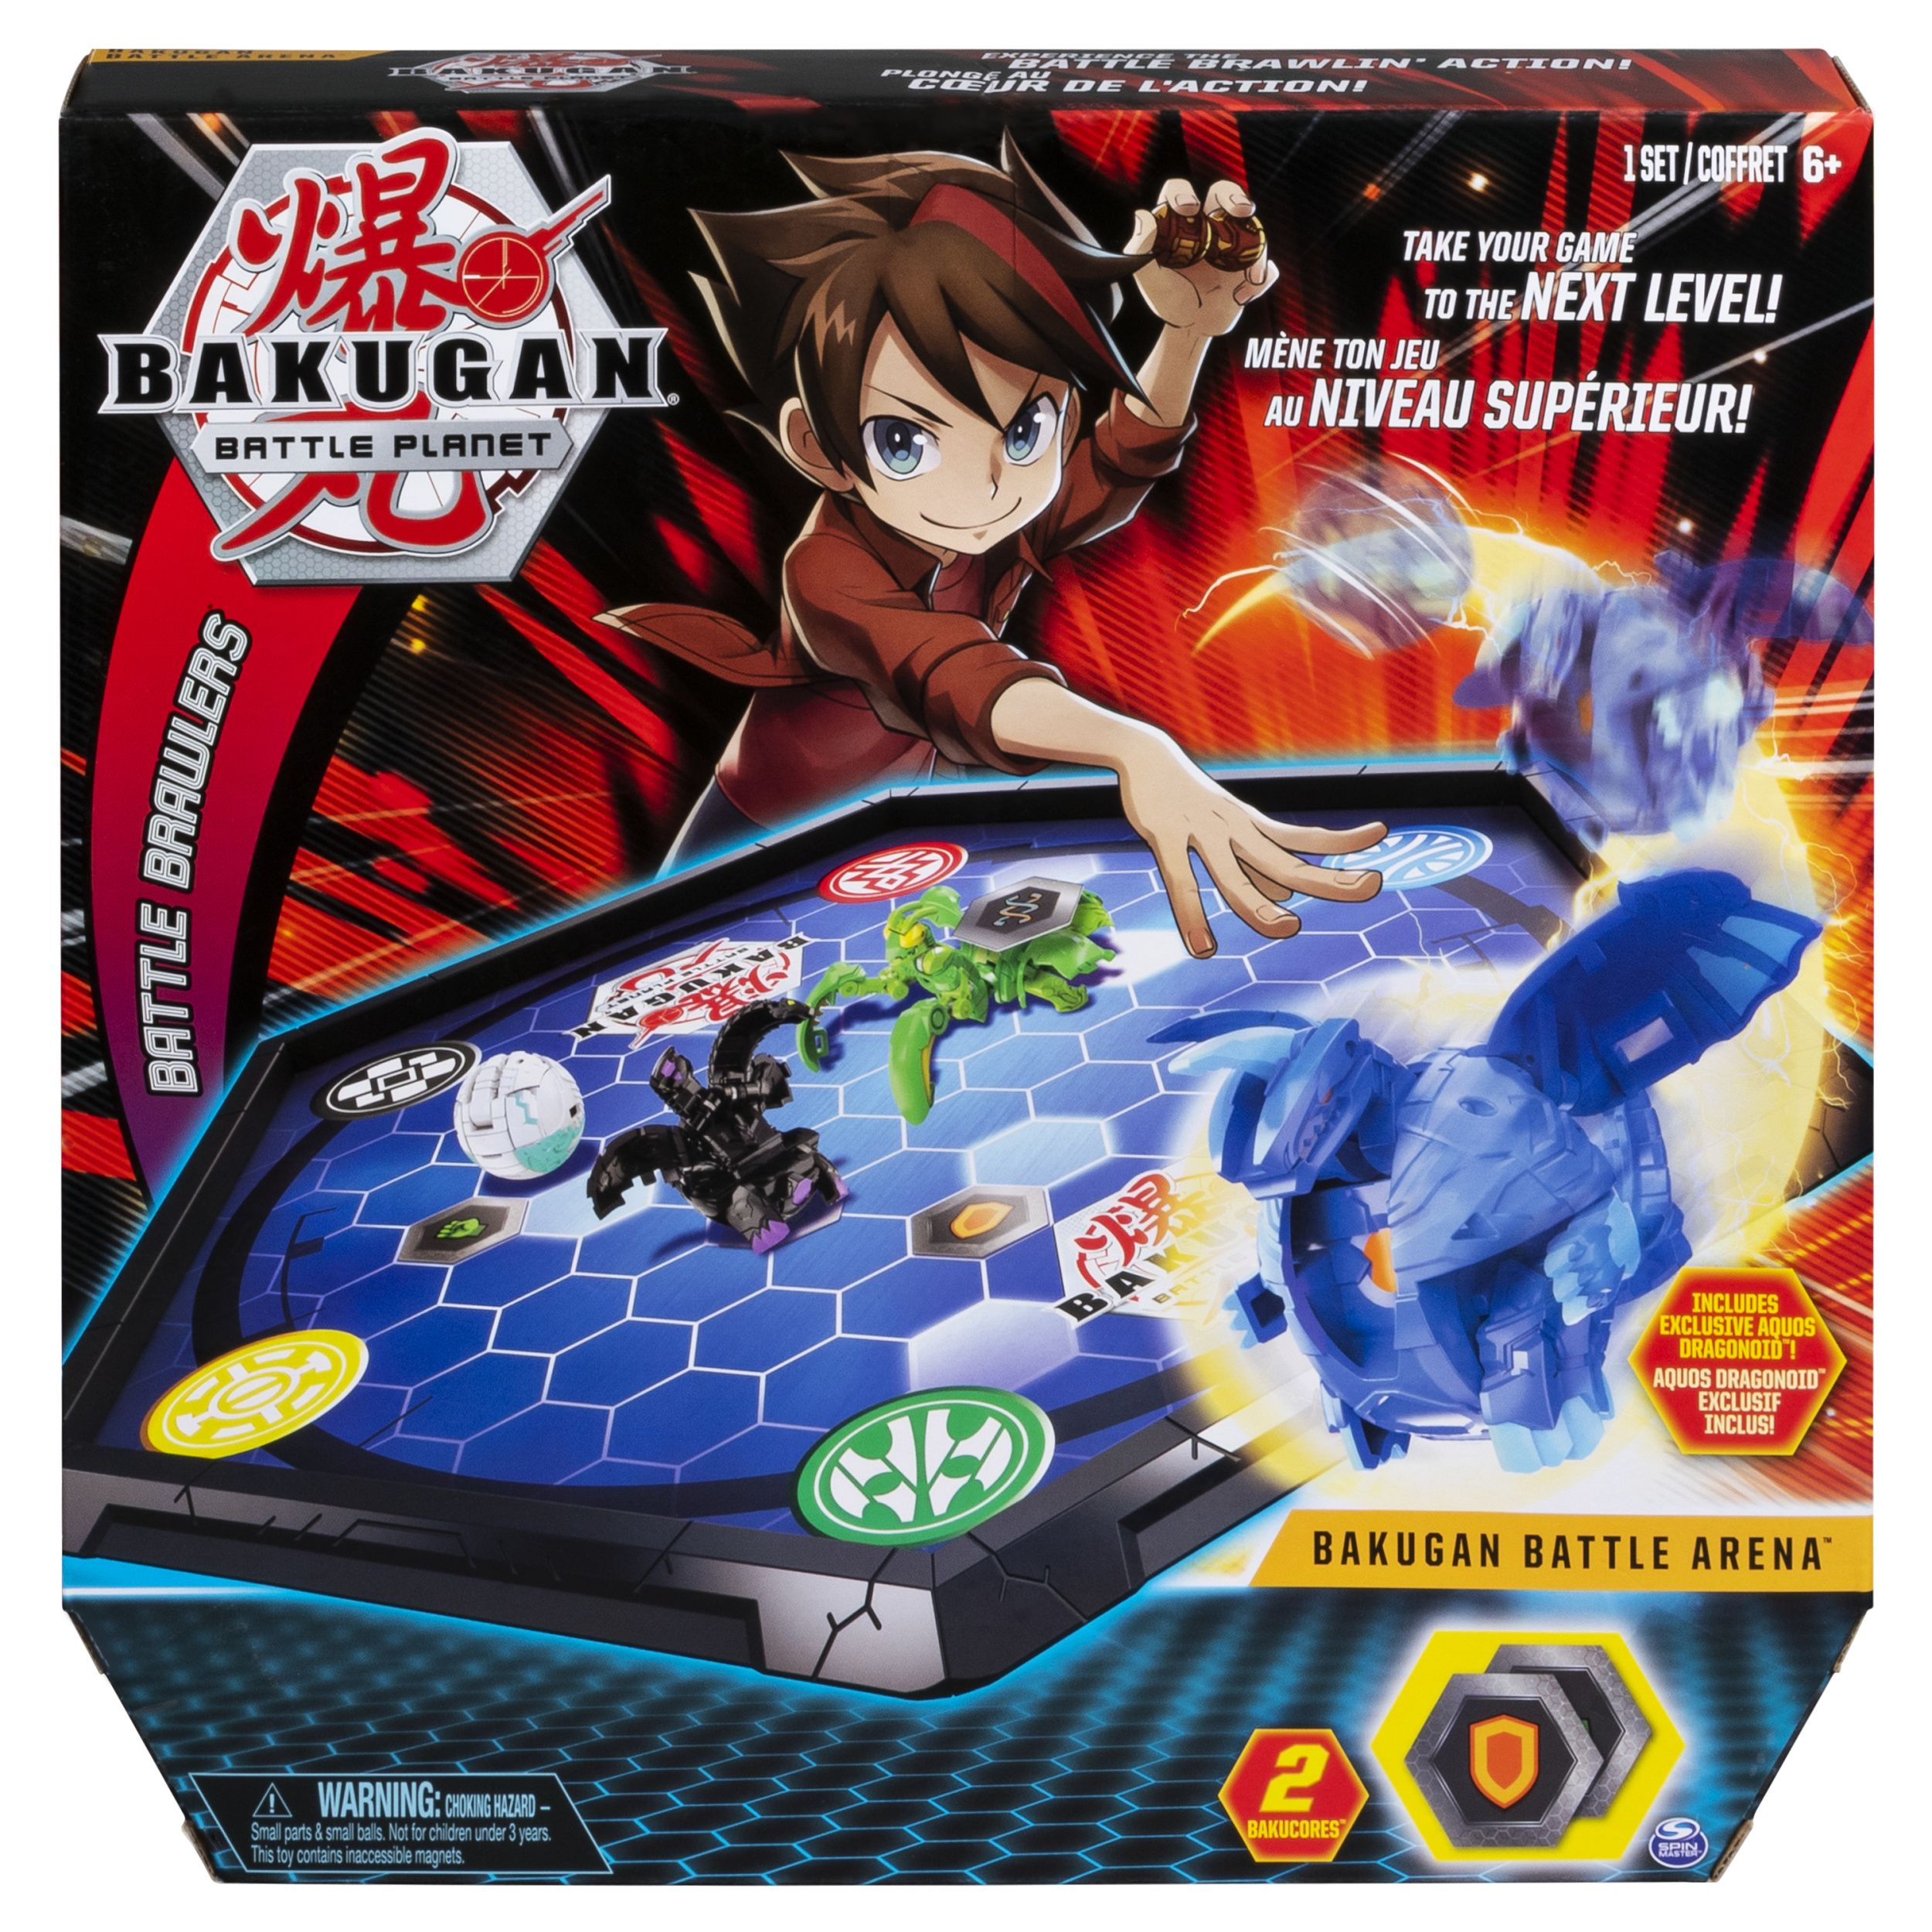 Bakugan Battle Arena Game Board For Bakugan Collectibles For Ages 6 And Up Edition May Vary Walmart Com In 2021 Bakugan Battle Brawlers Board Games Battle